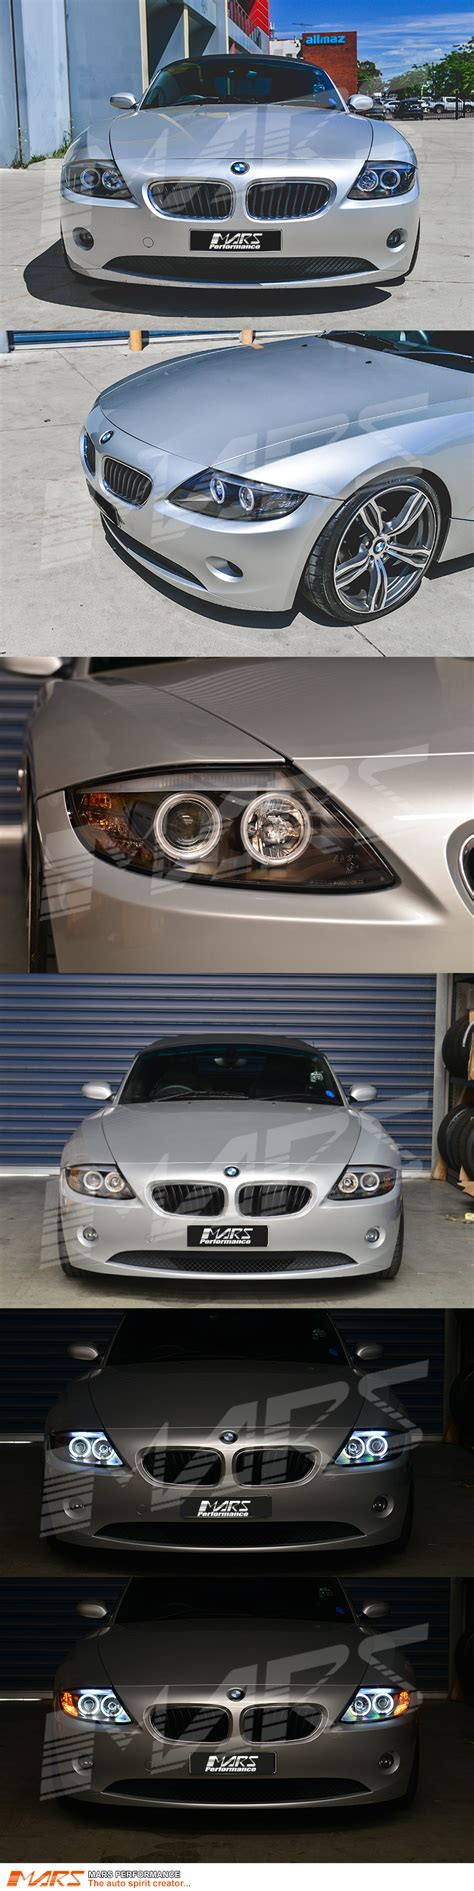 what does hid lights stand for black ccfl angel eyes projector head lights for bmw z4 e85